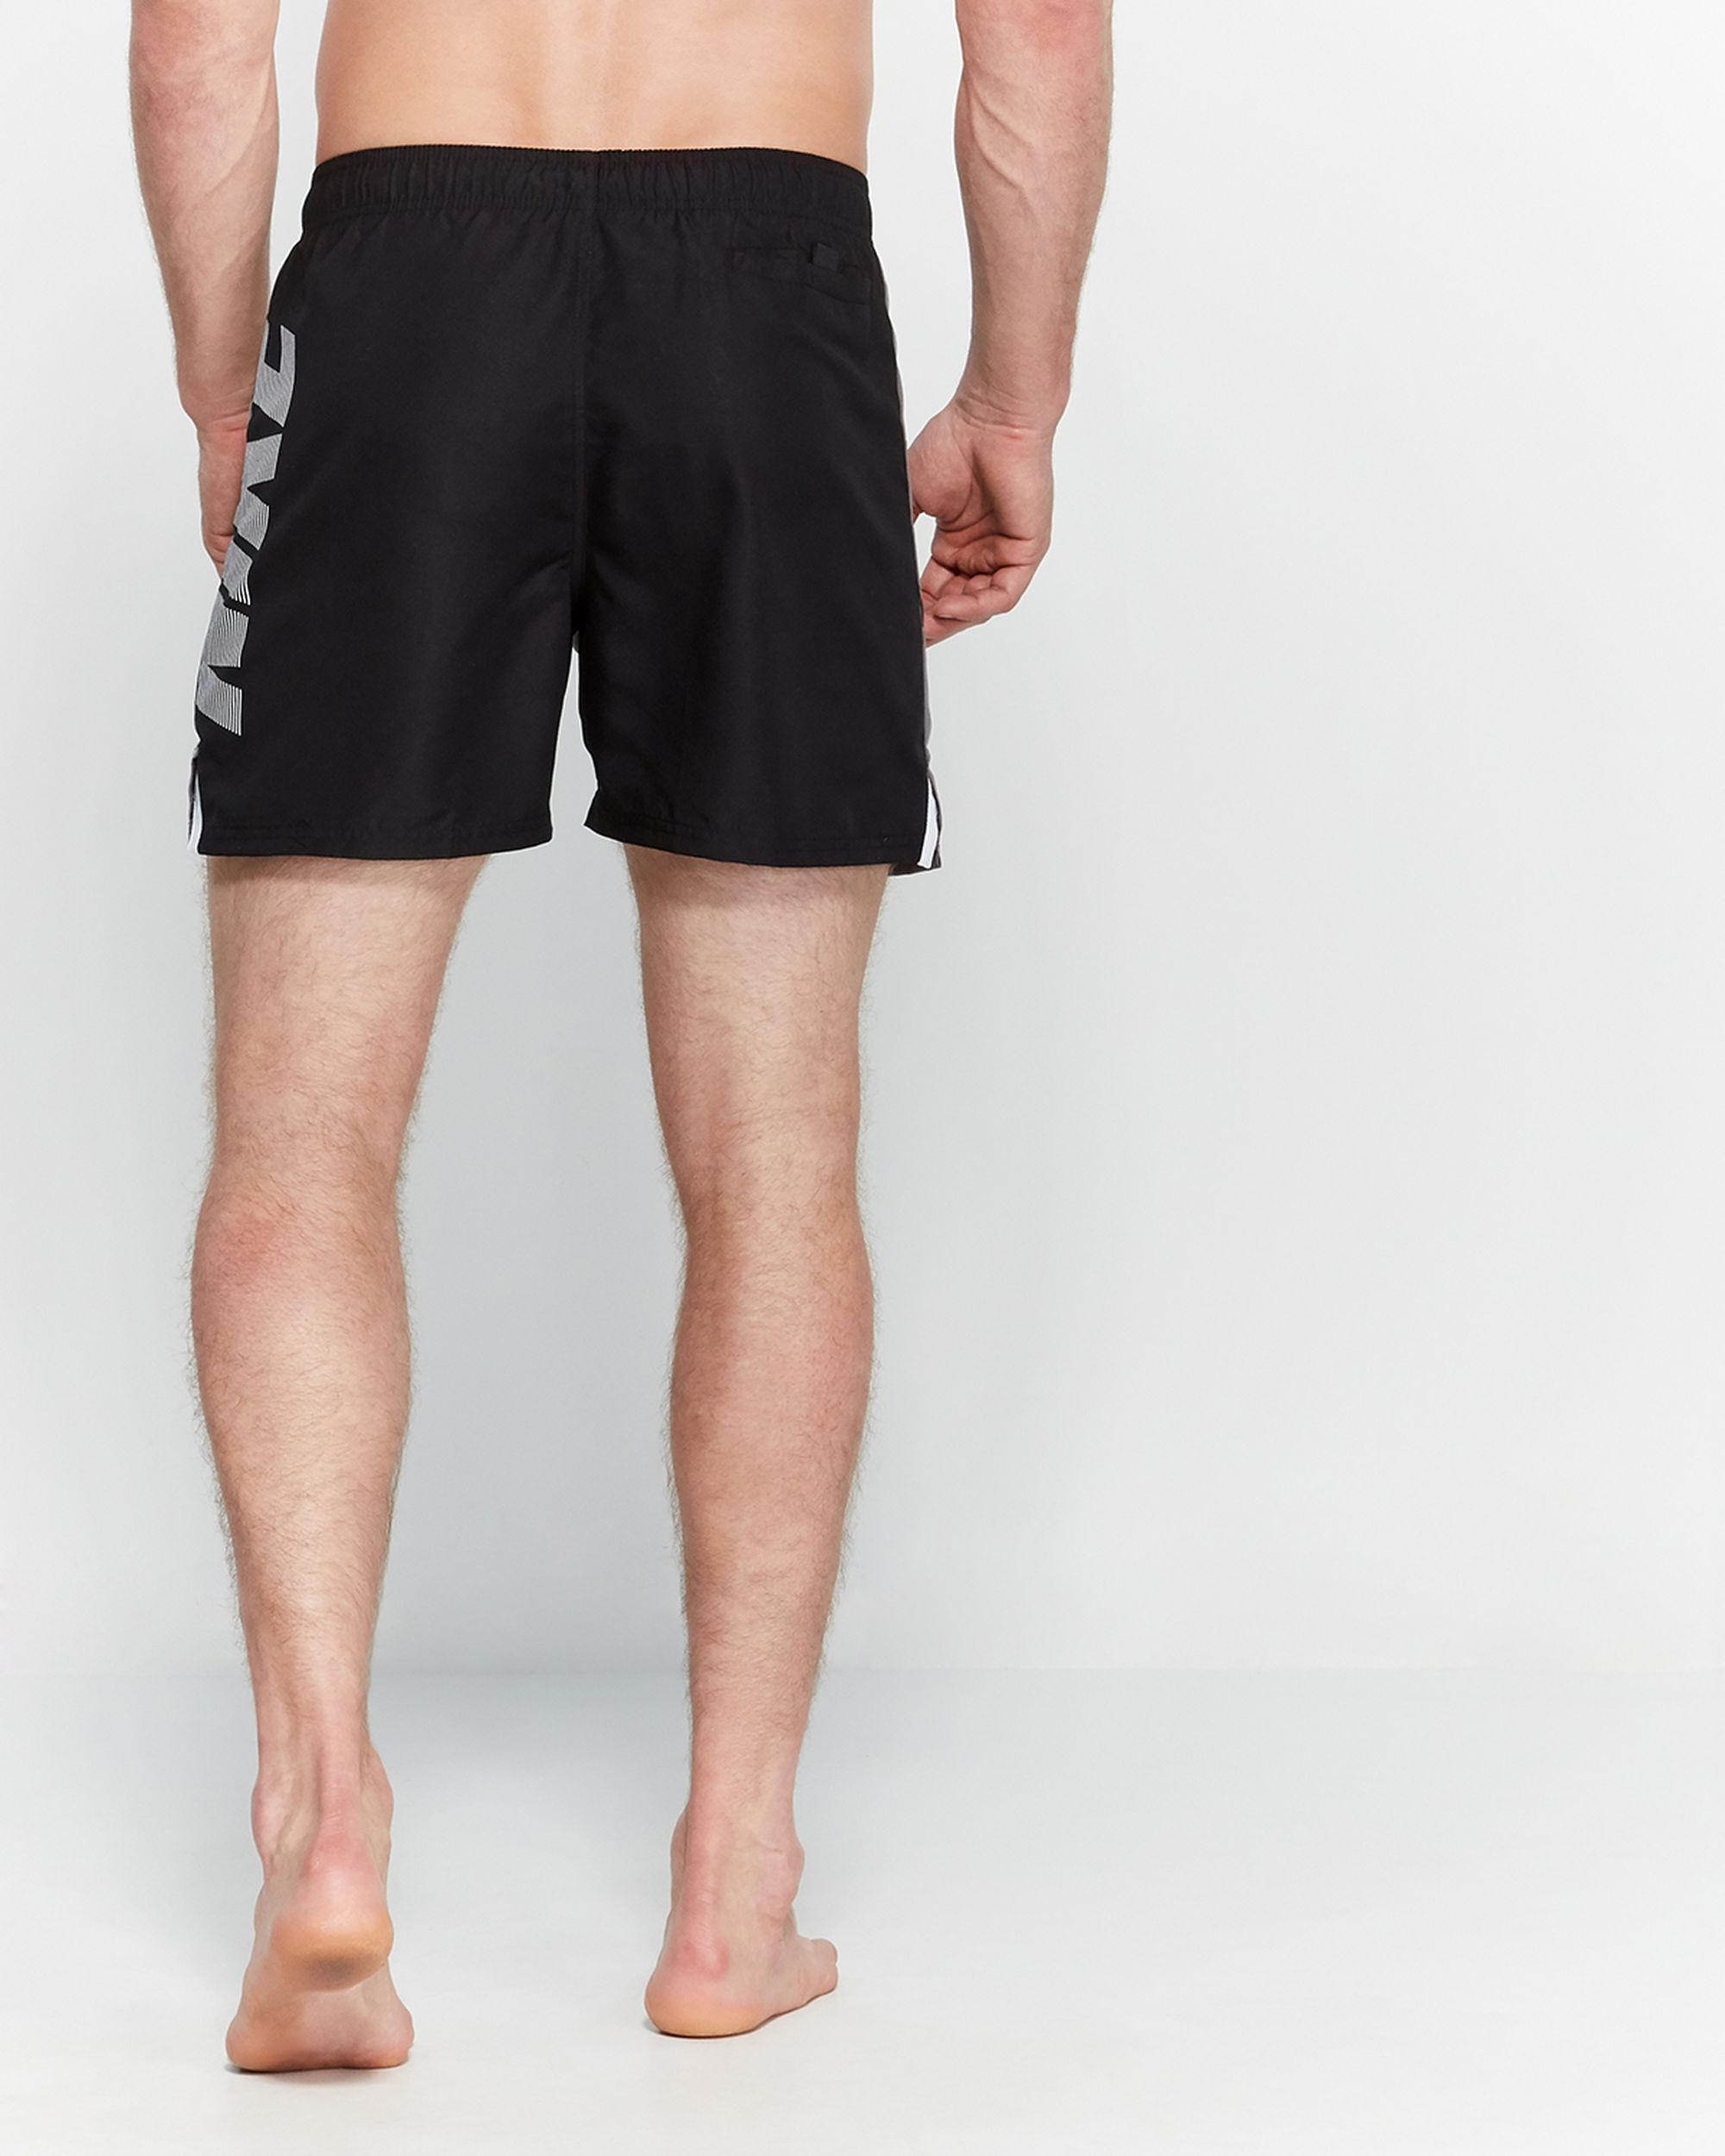 2095e2c958379 Lyst - Nike Rift Vital Swim Trunks in Black for Men